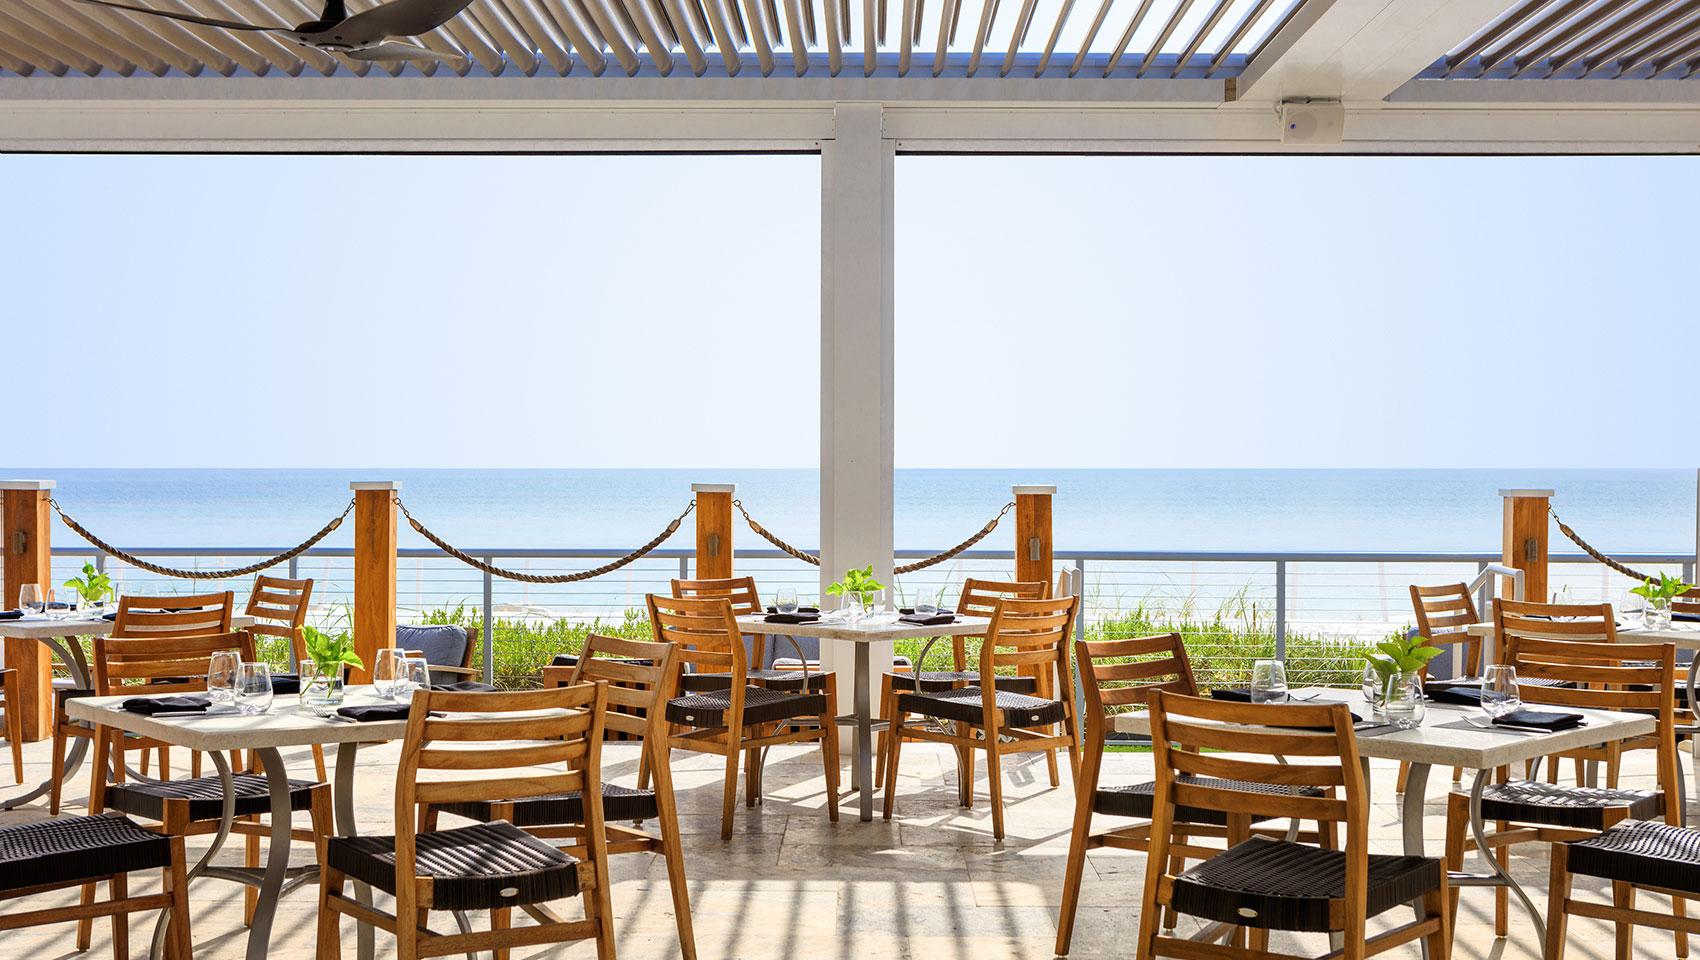 Oceanfront dining at Heaton's Reef